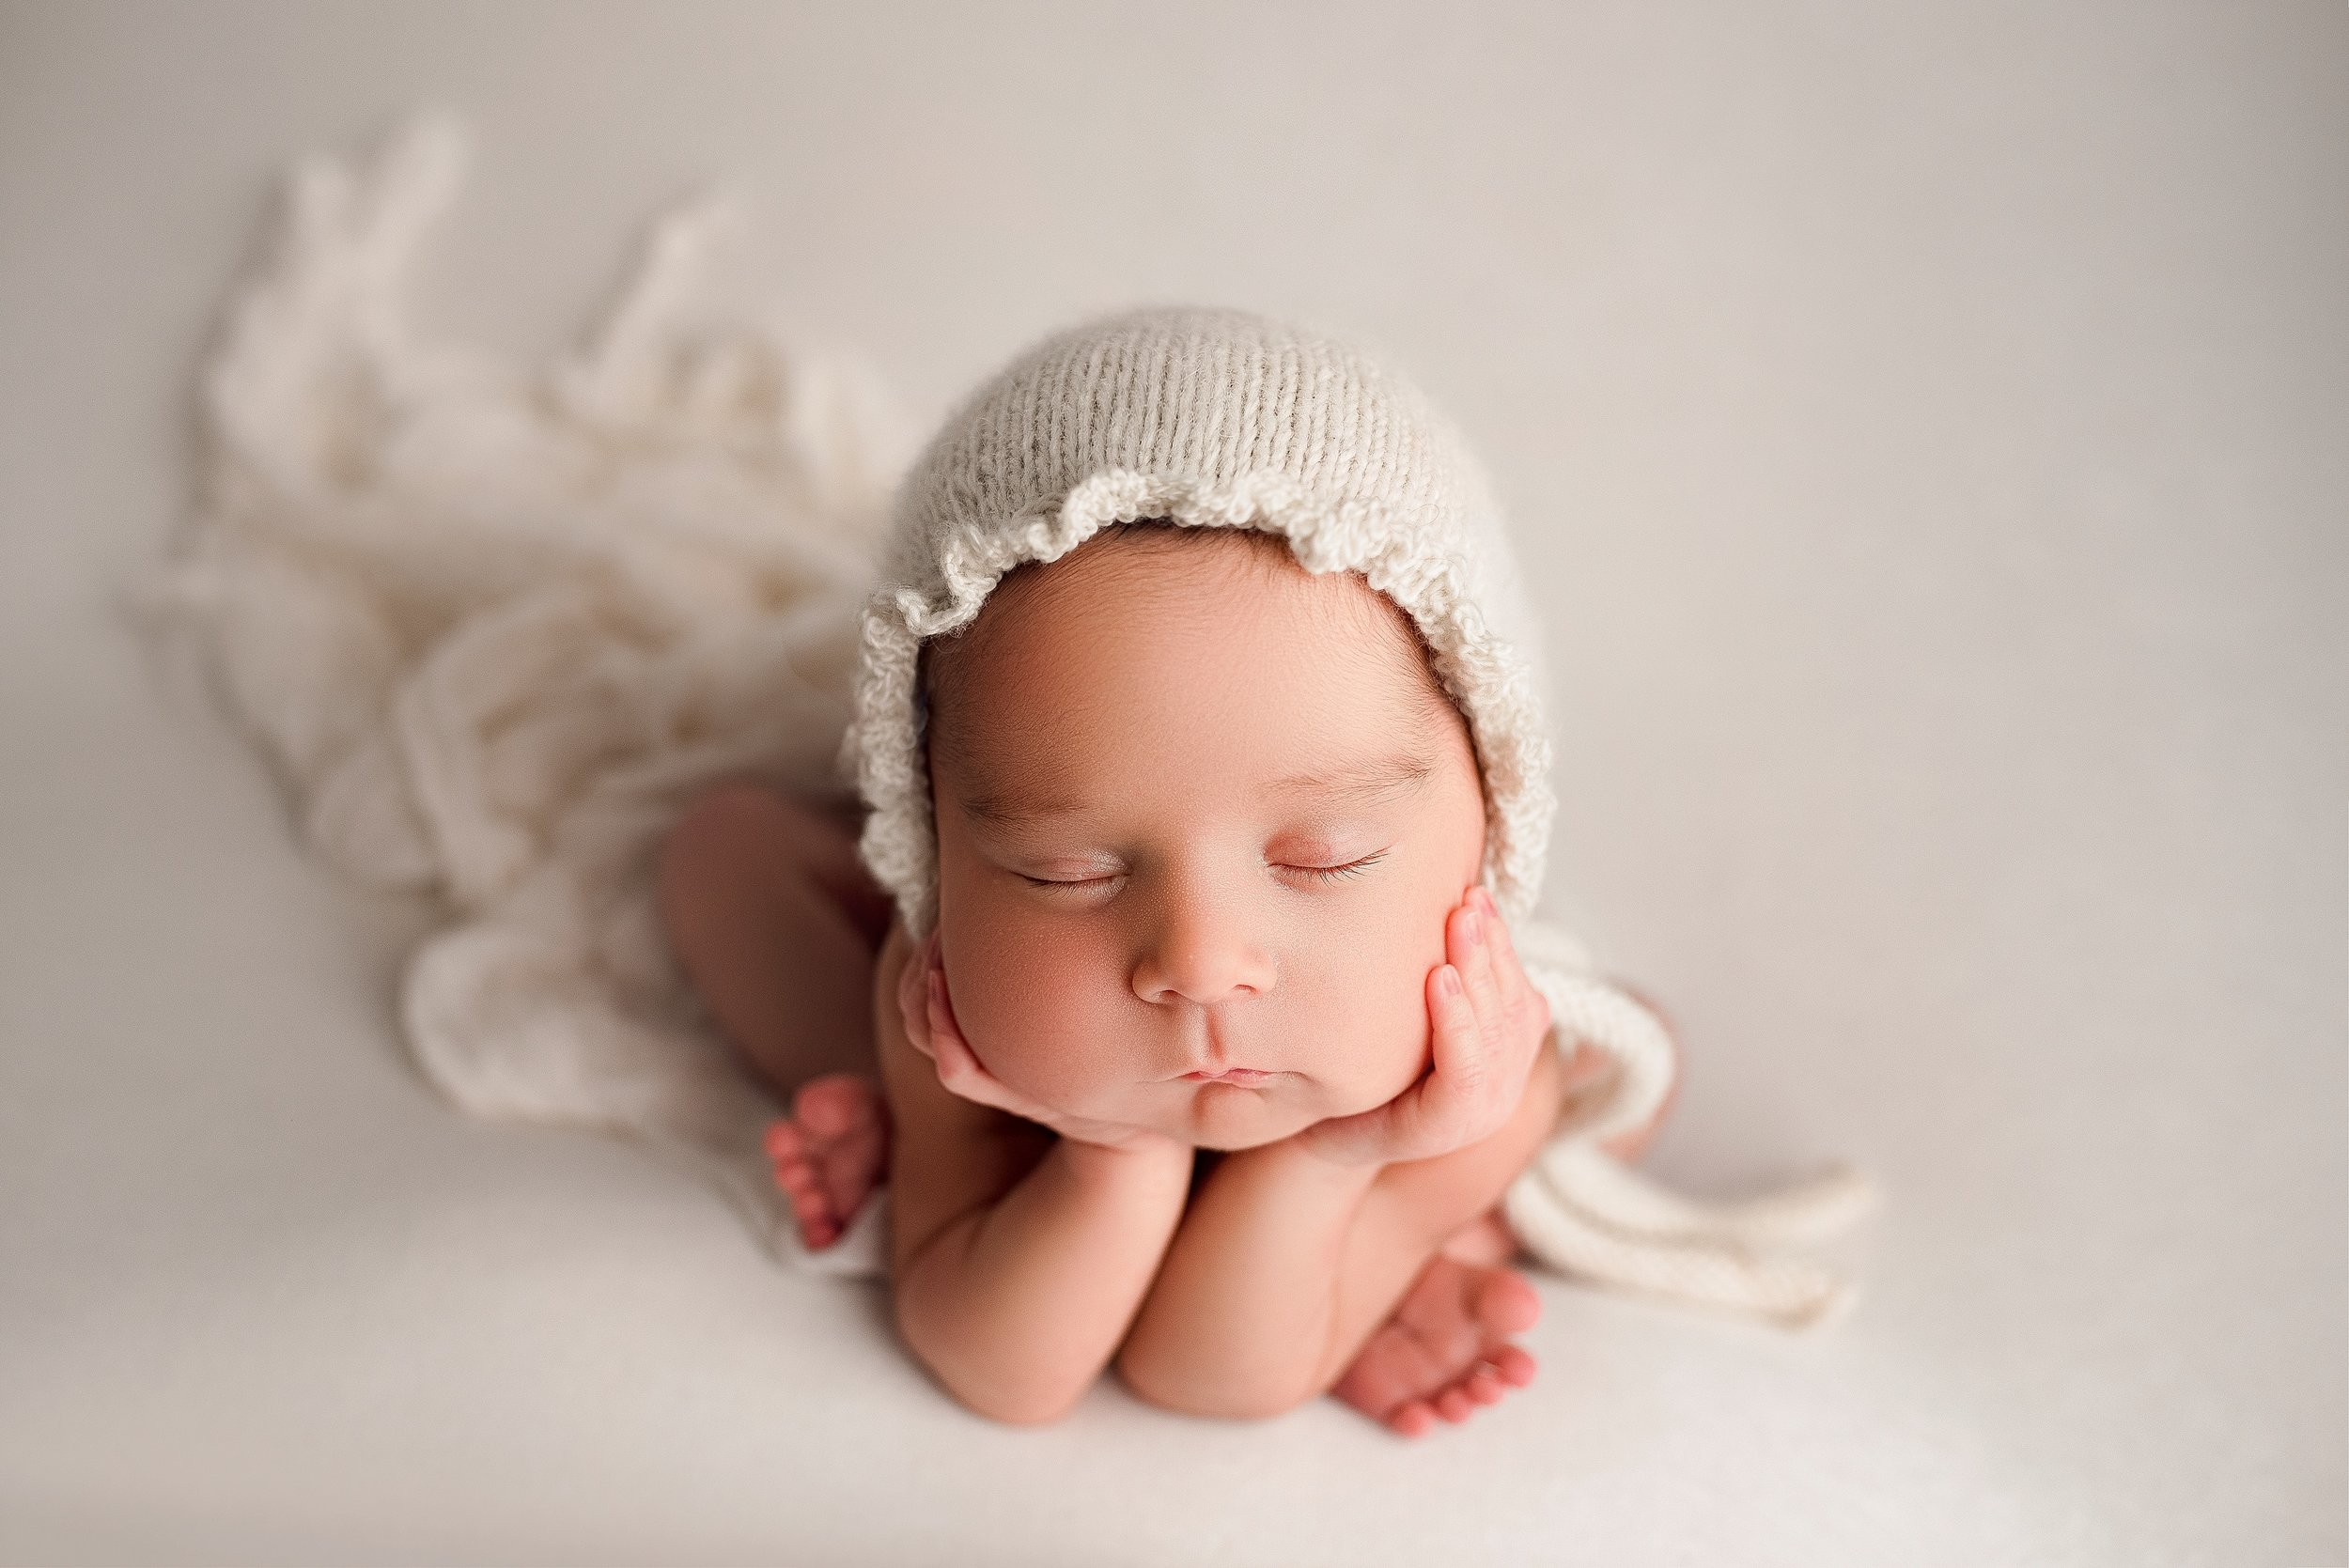 Newborn froggy pose